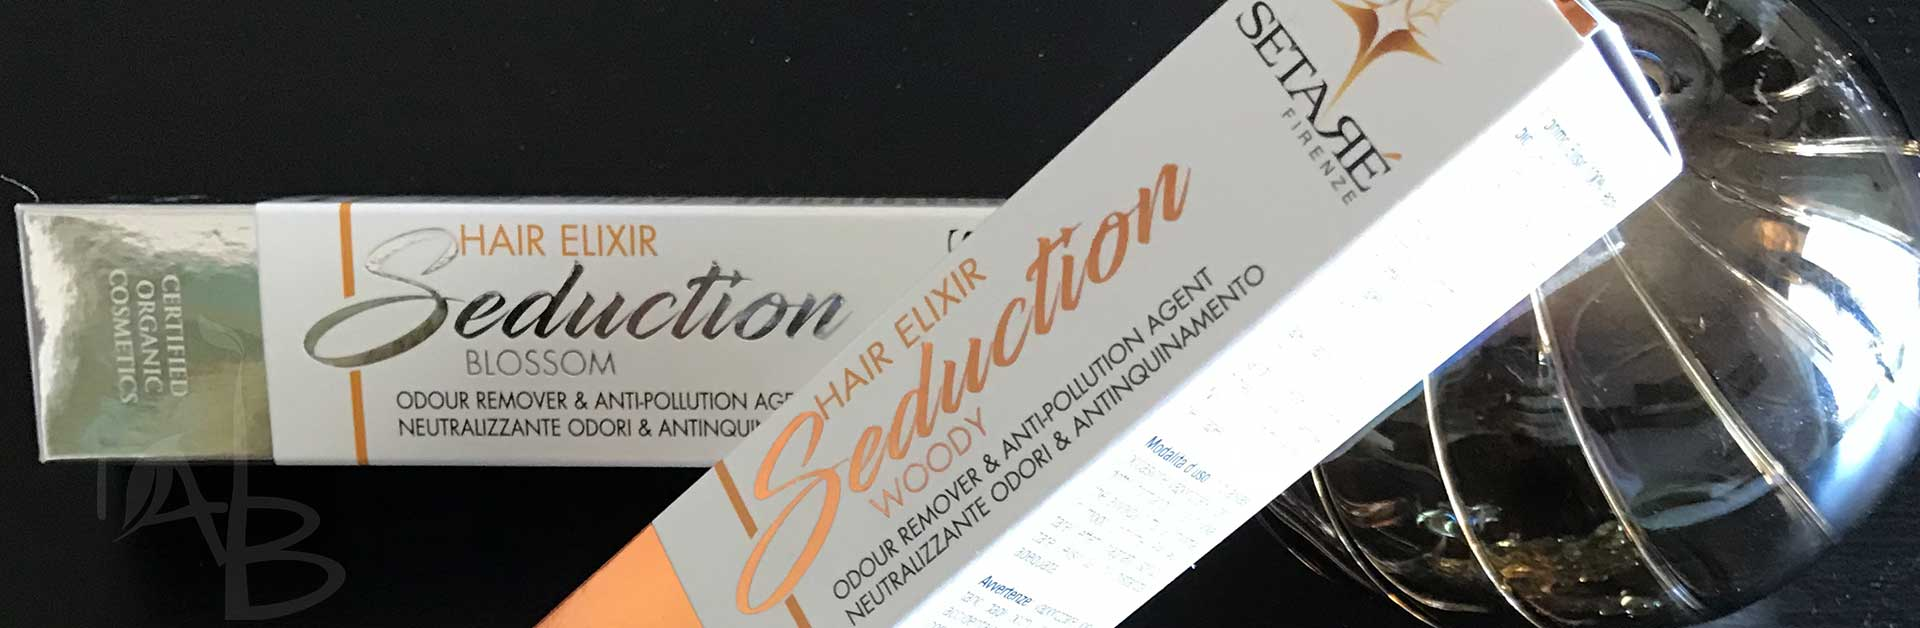 Hair Elixir Seduction di Setaré